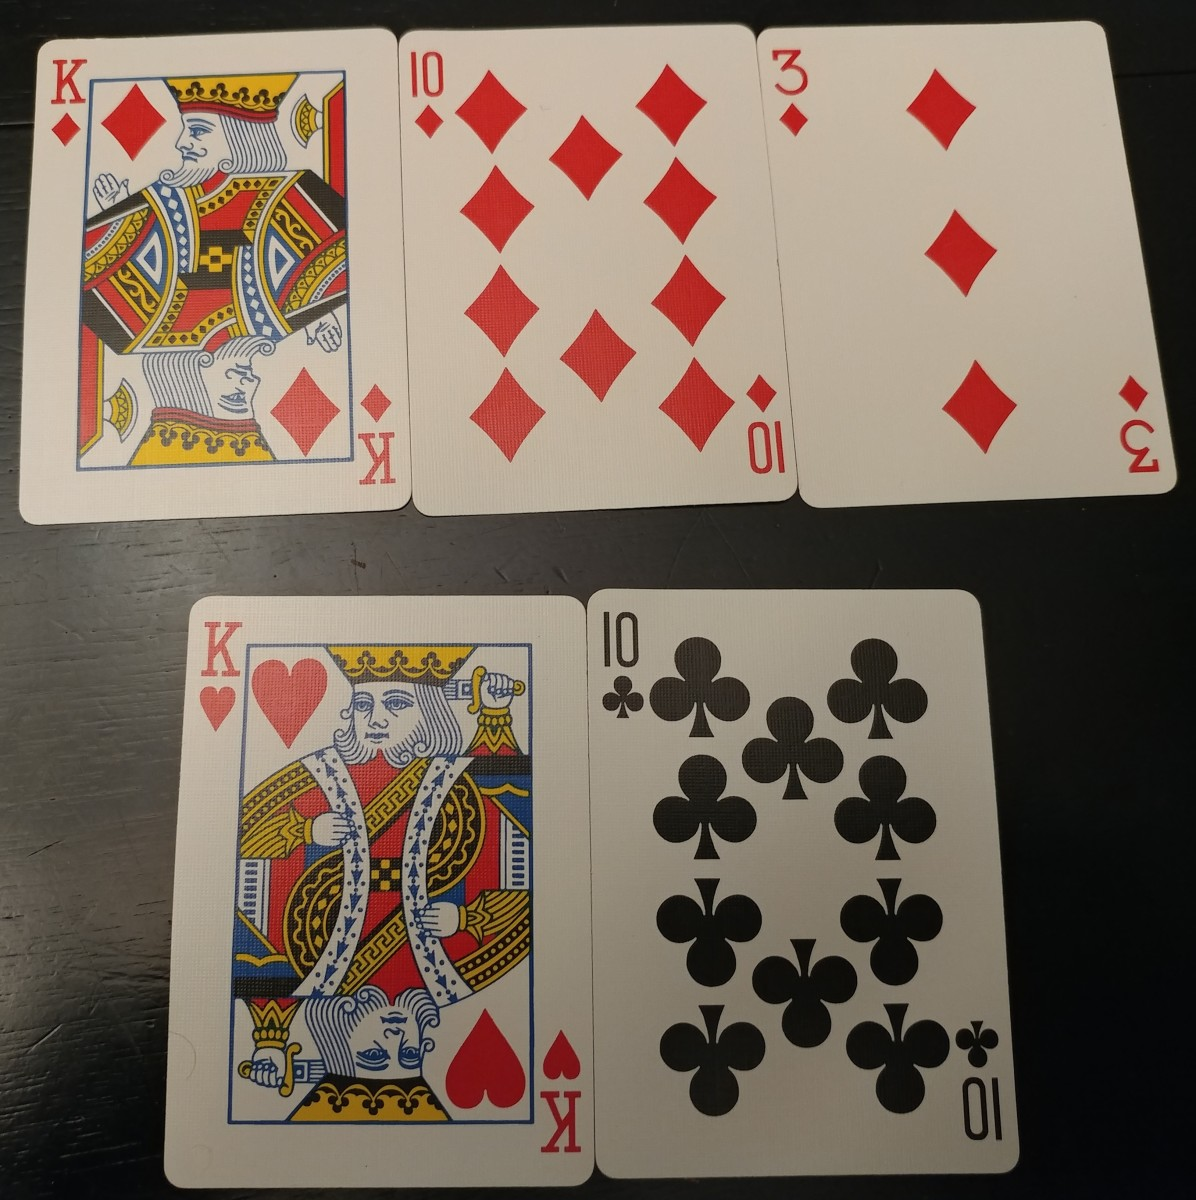 This is a good two pair hand.